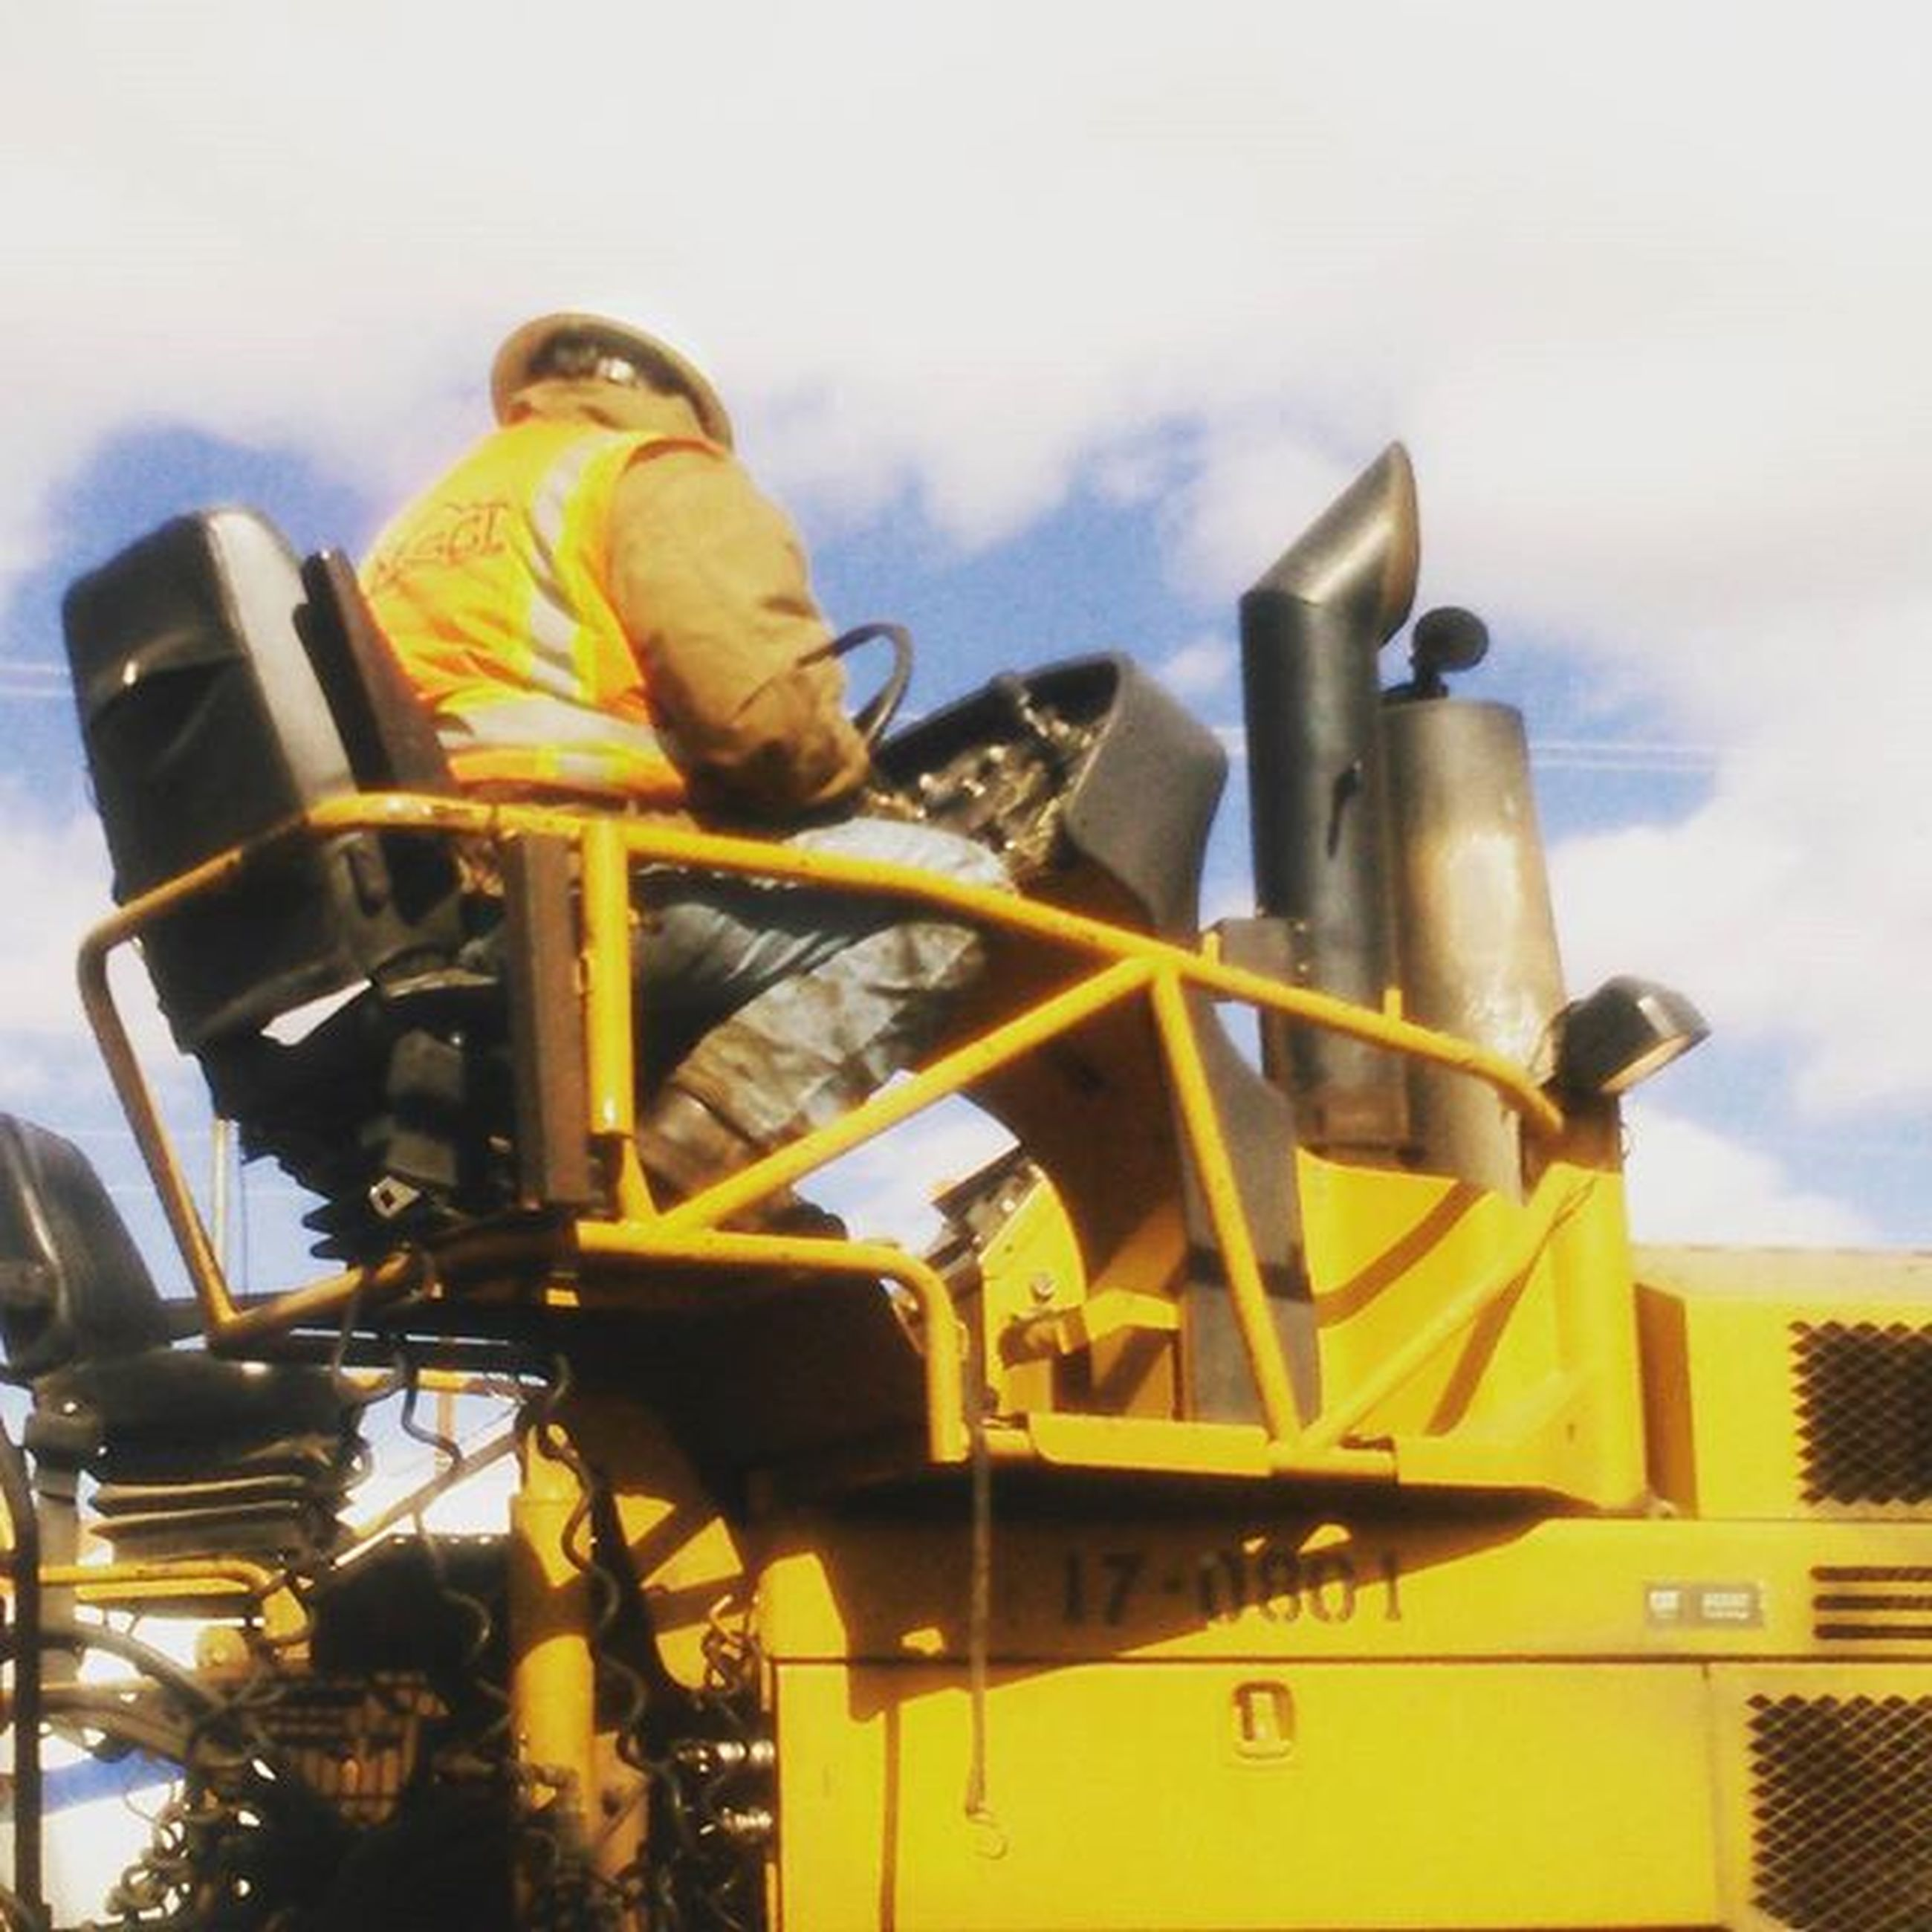 yellow, low angle view, sky, no people, outdoors, city, day, cloud - sky, machinery, cloud, close-up, high section